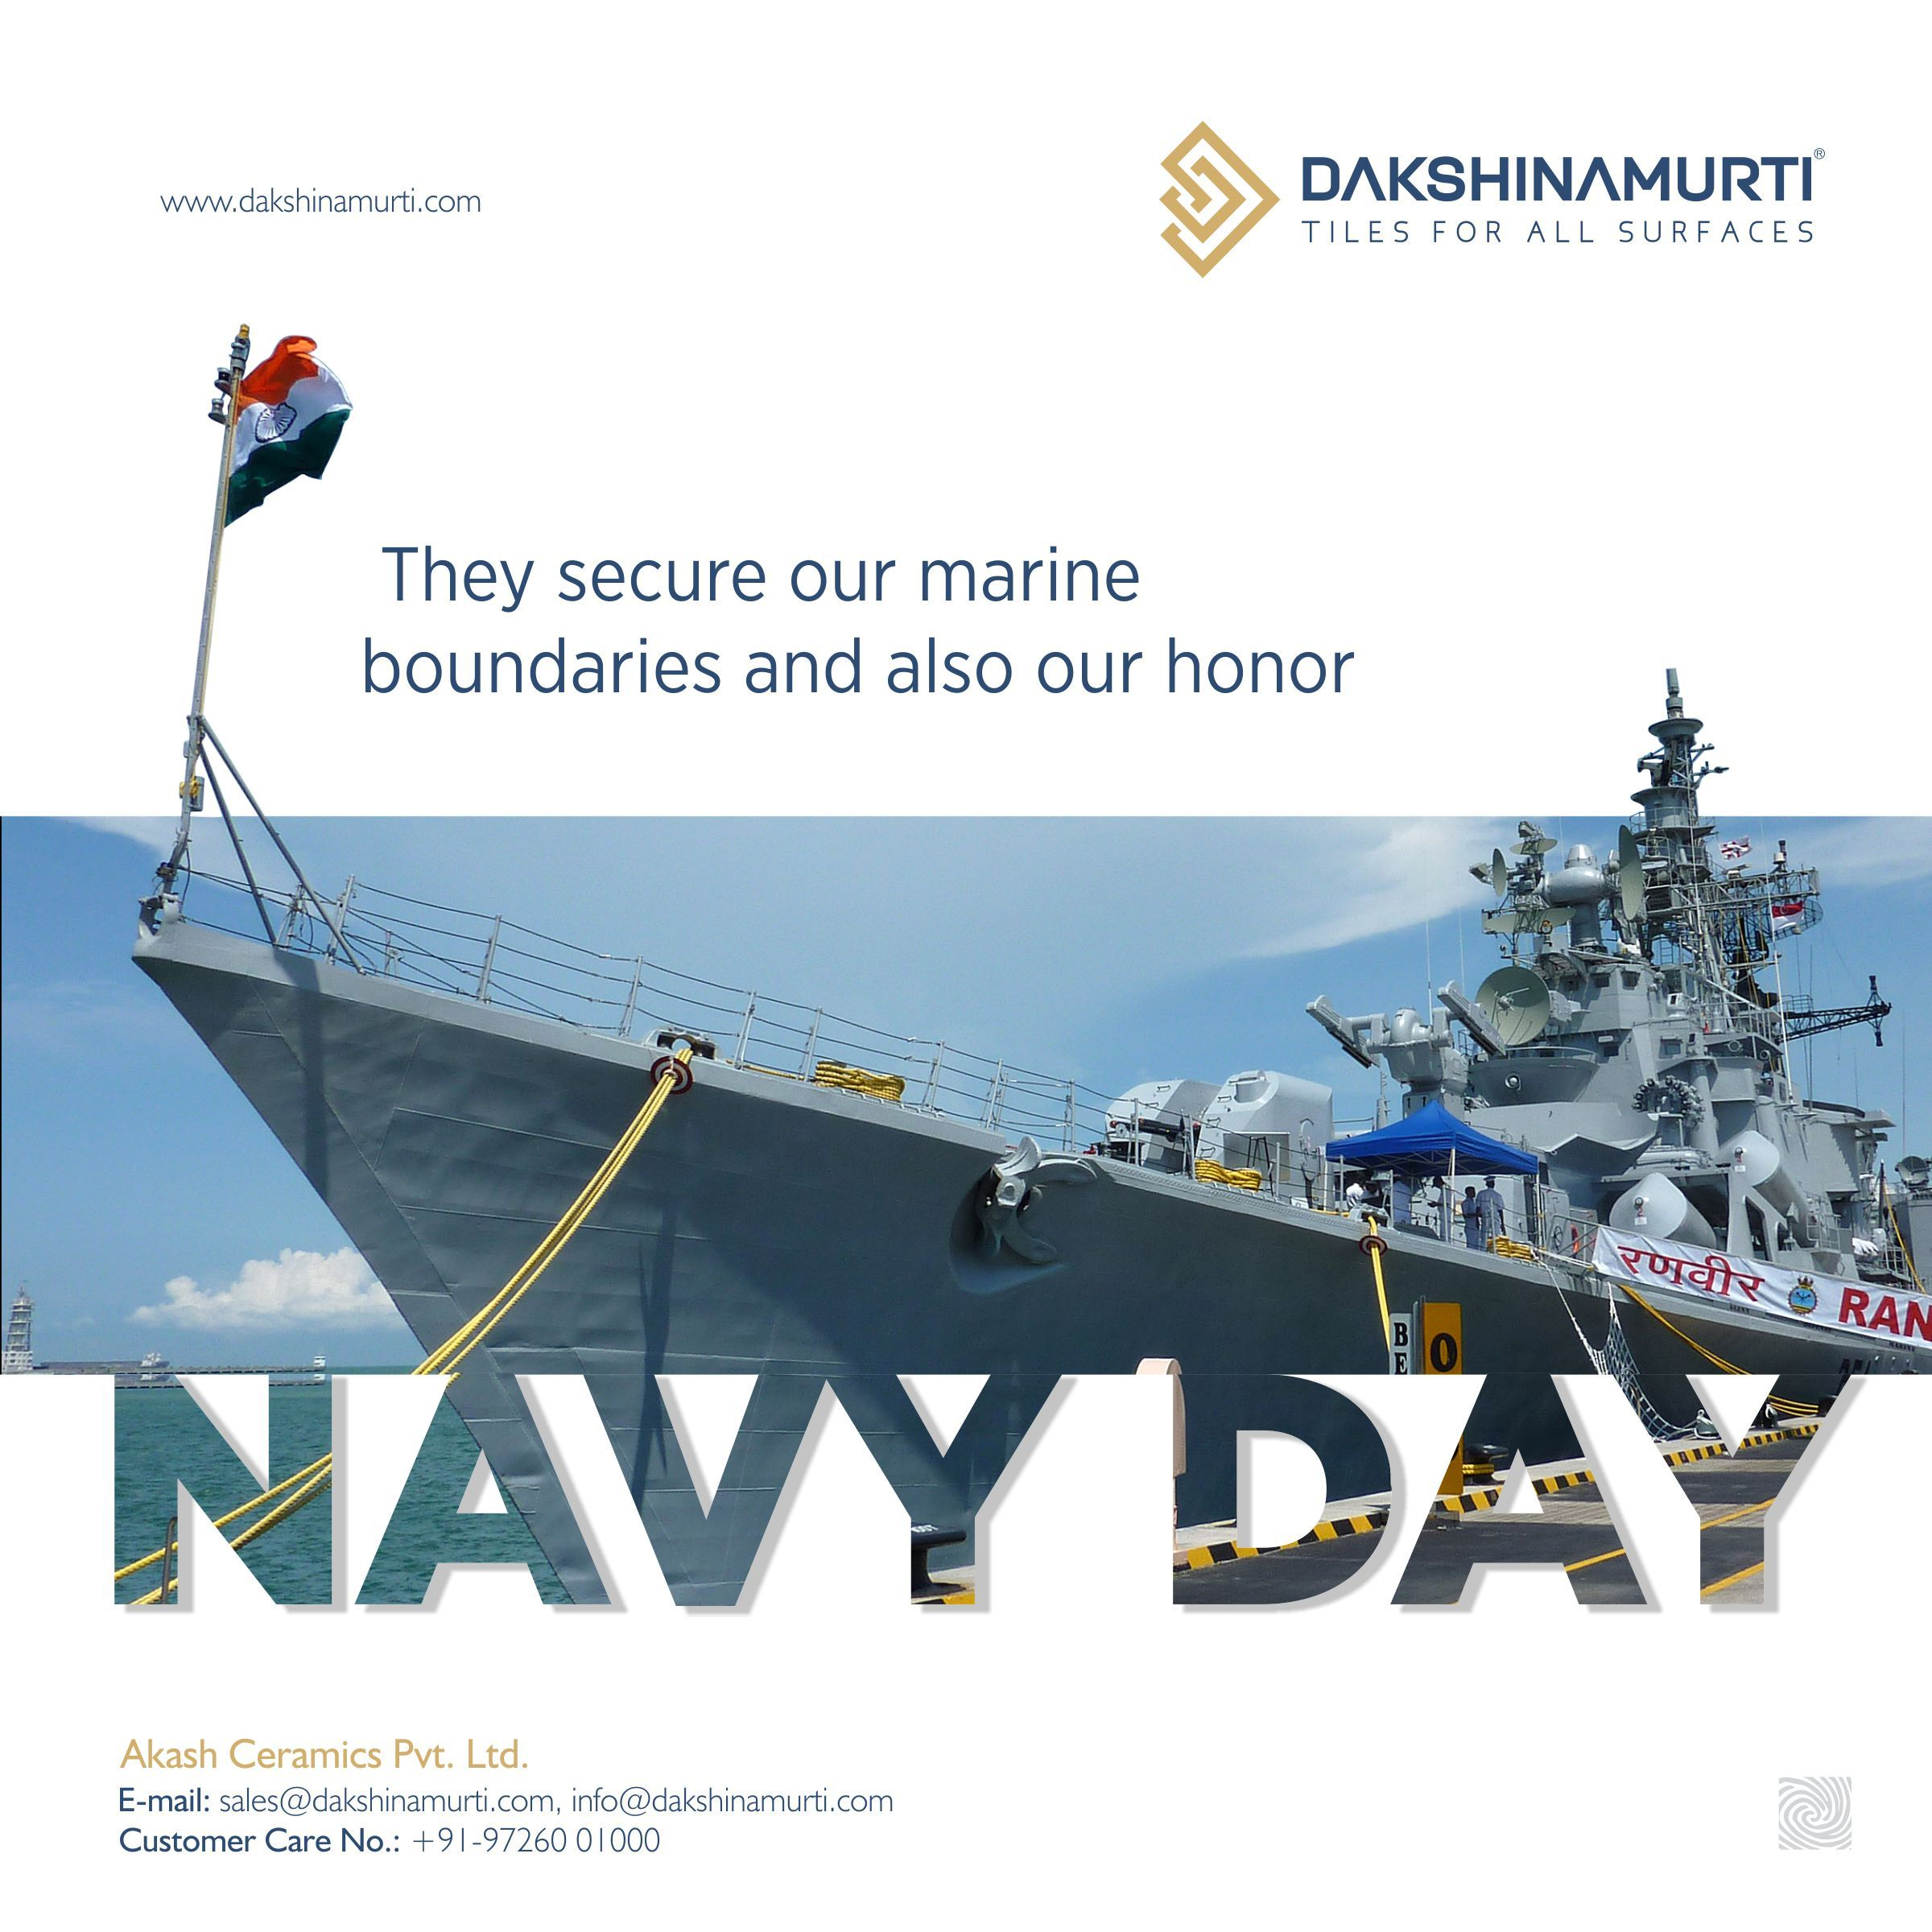 They Secure Our Marine Boundaries And Also Our Honor Indian Navy Day Dakshinamurtitiles Floortiles Indian Navy Day Navy Day Indian Navy Day Indian Navy